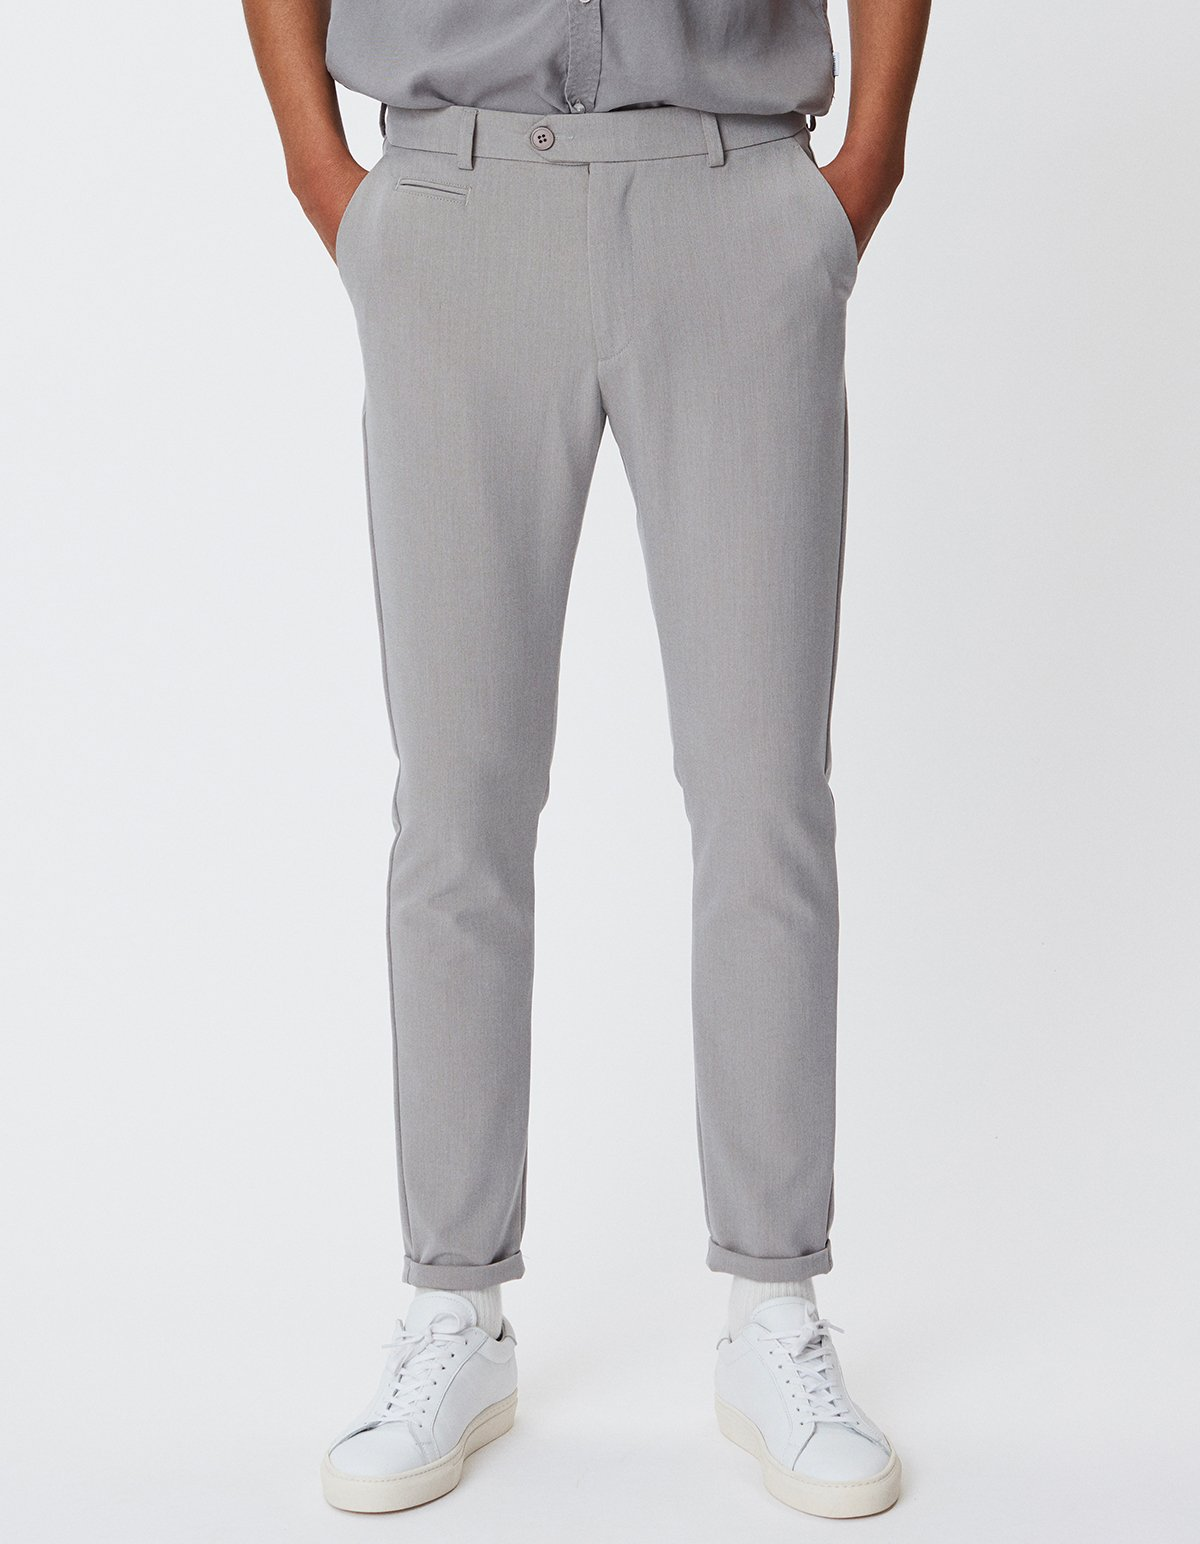 Les Deux Como Light Suit Pants Mirage Grey